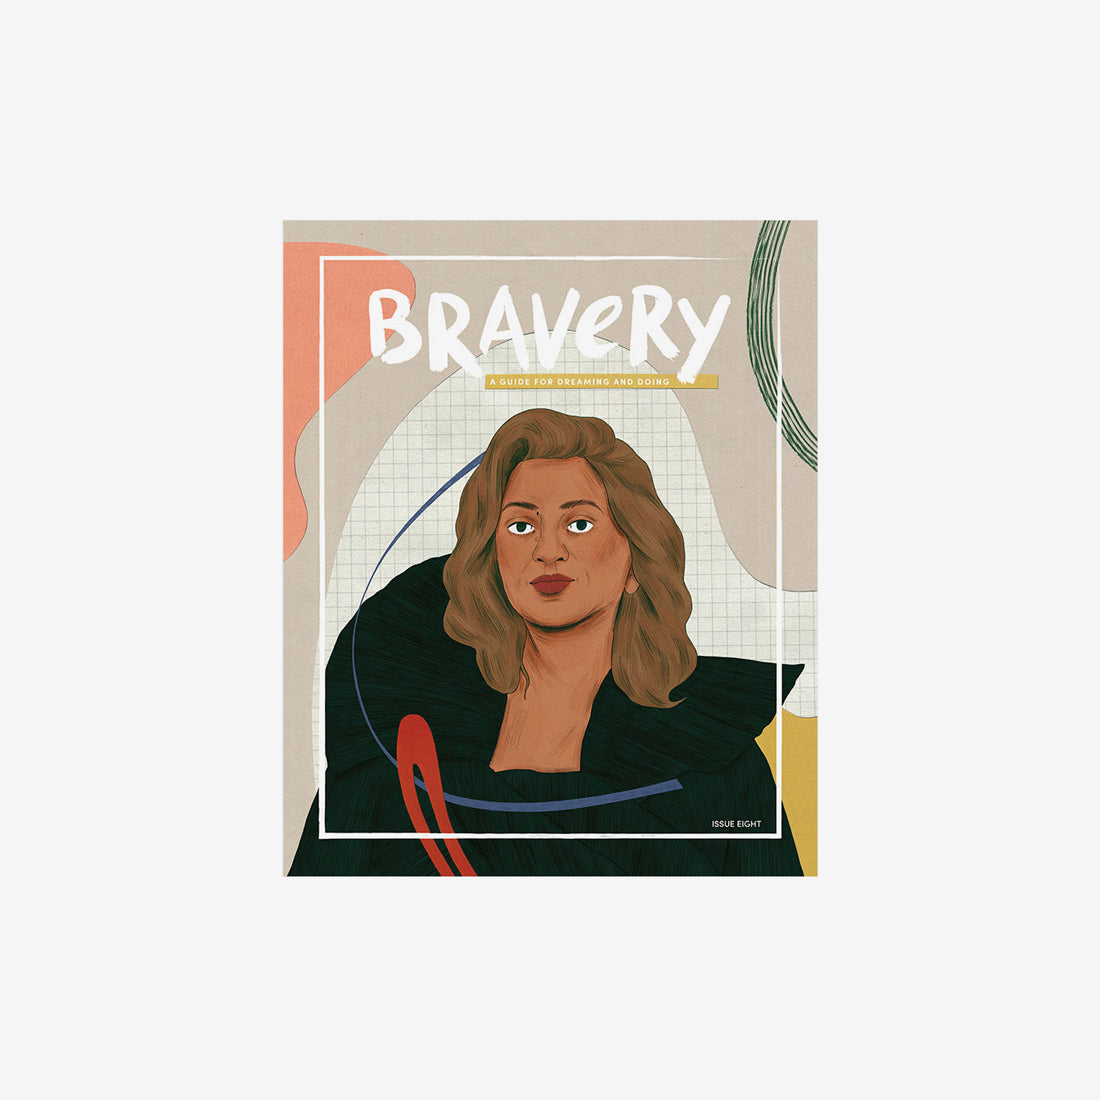 Bravery Issue #8 - Zaha Hadid